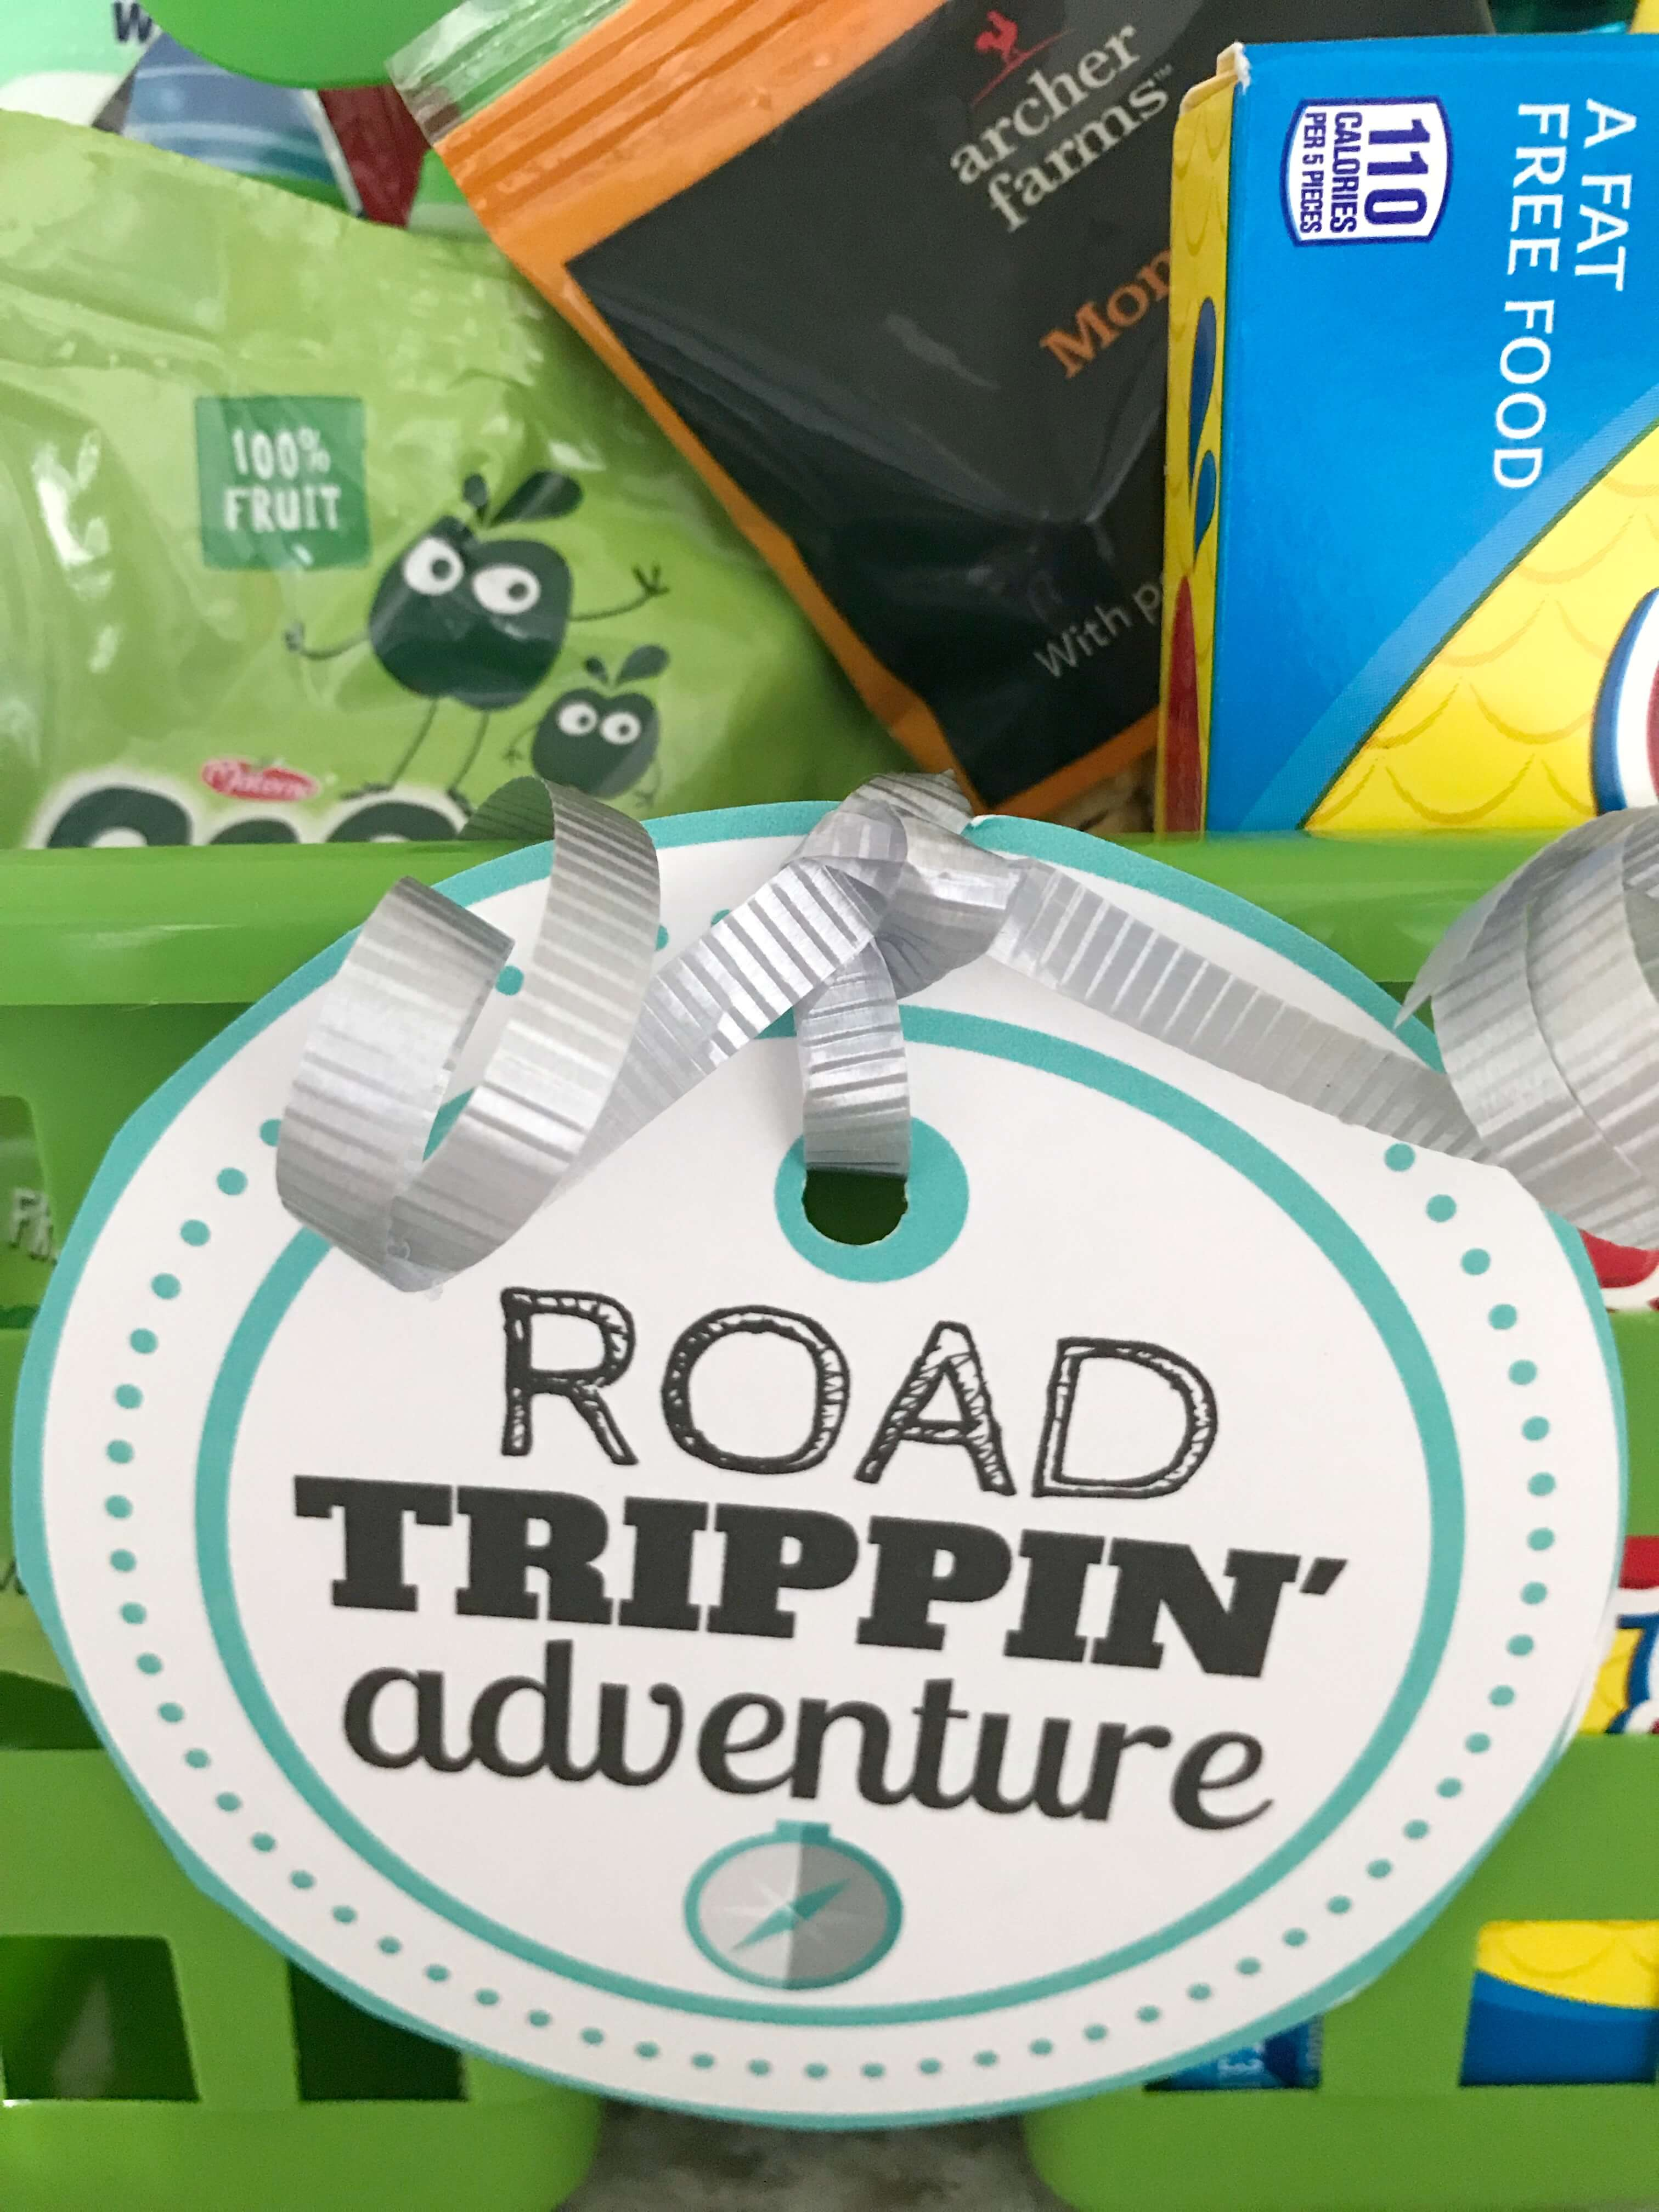 This road trip gift basket idea is made using Dollar store caddies and filled with easy road trip snacks perfect for adults and kids alike! Free printable labels are also included in this road trip care package. #roadtrip #roadtrippin #roadtripessentials #giftideas #giftbaskets